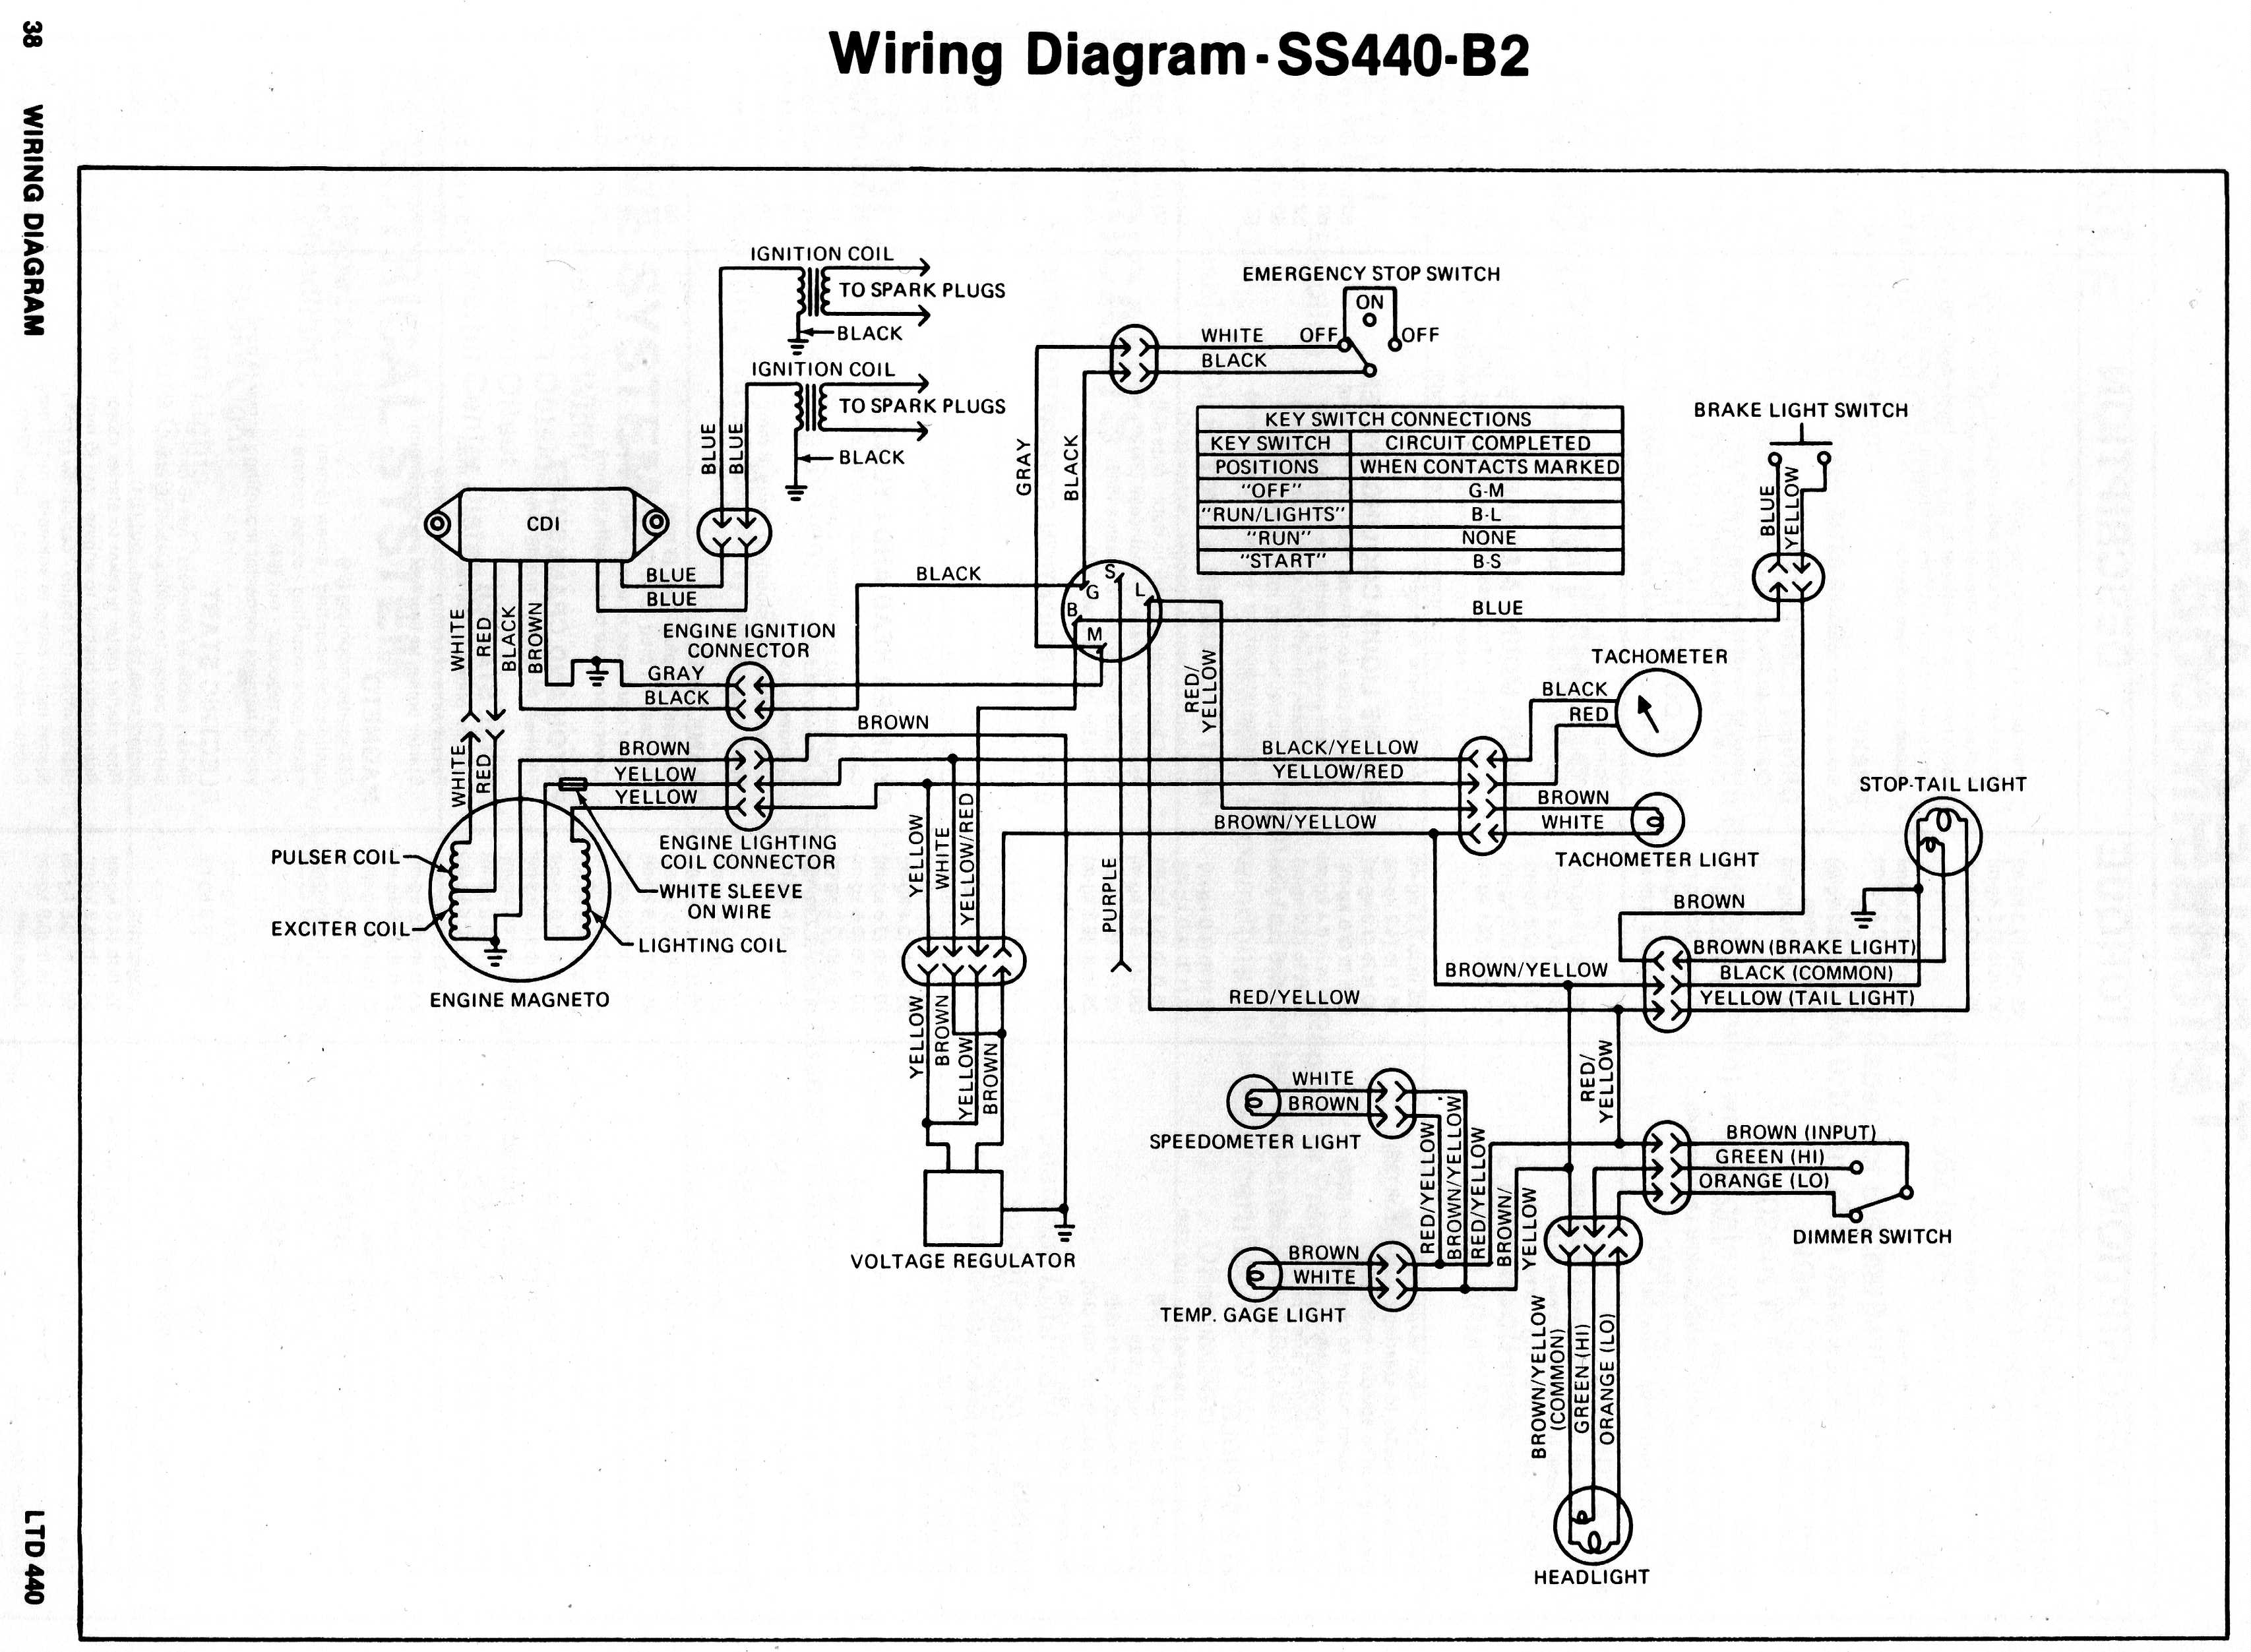 2h9 Wiring Diagram